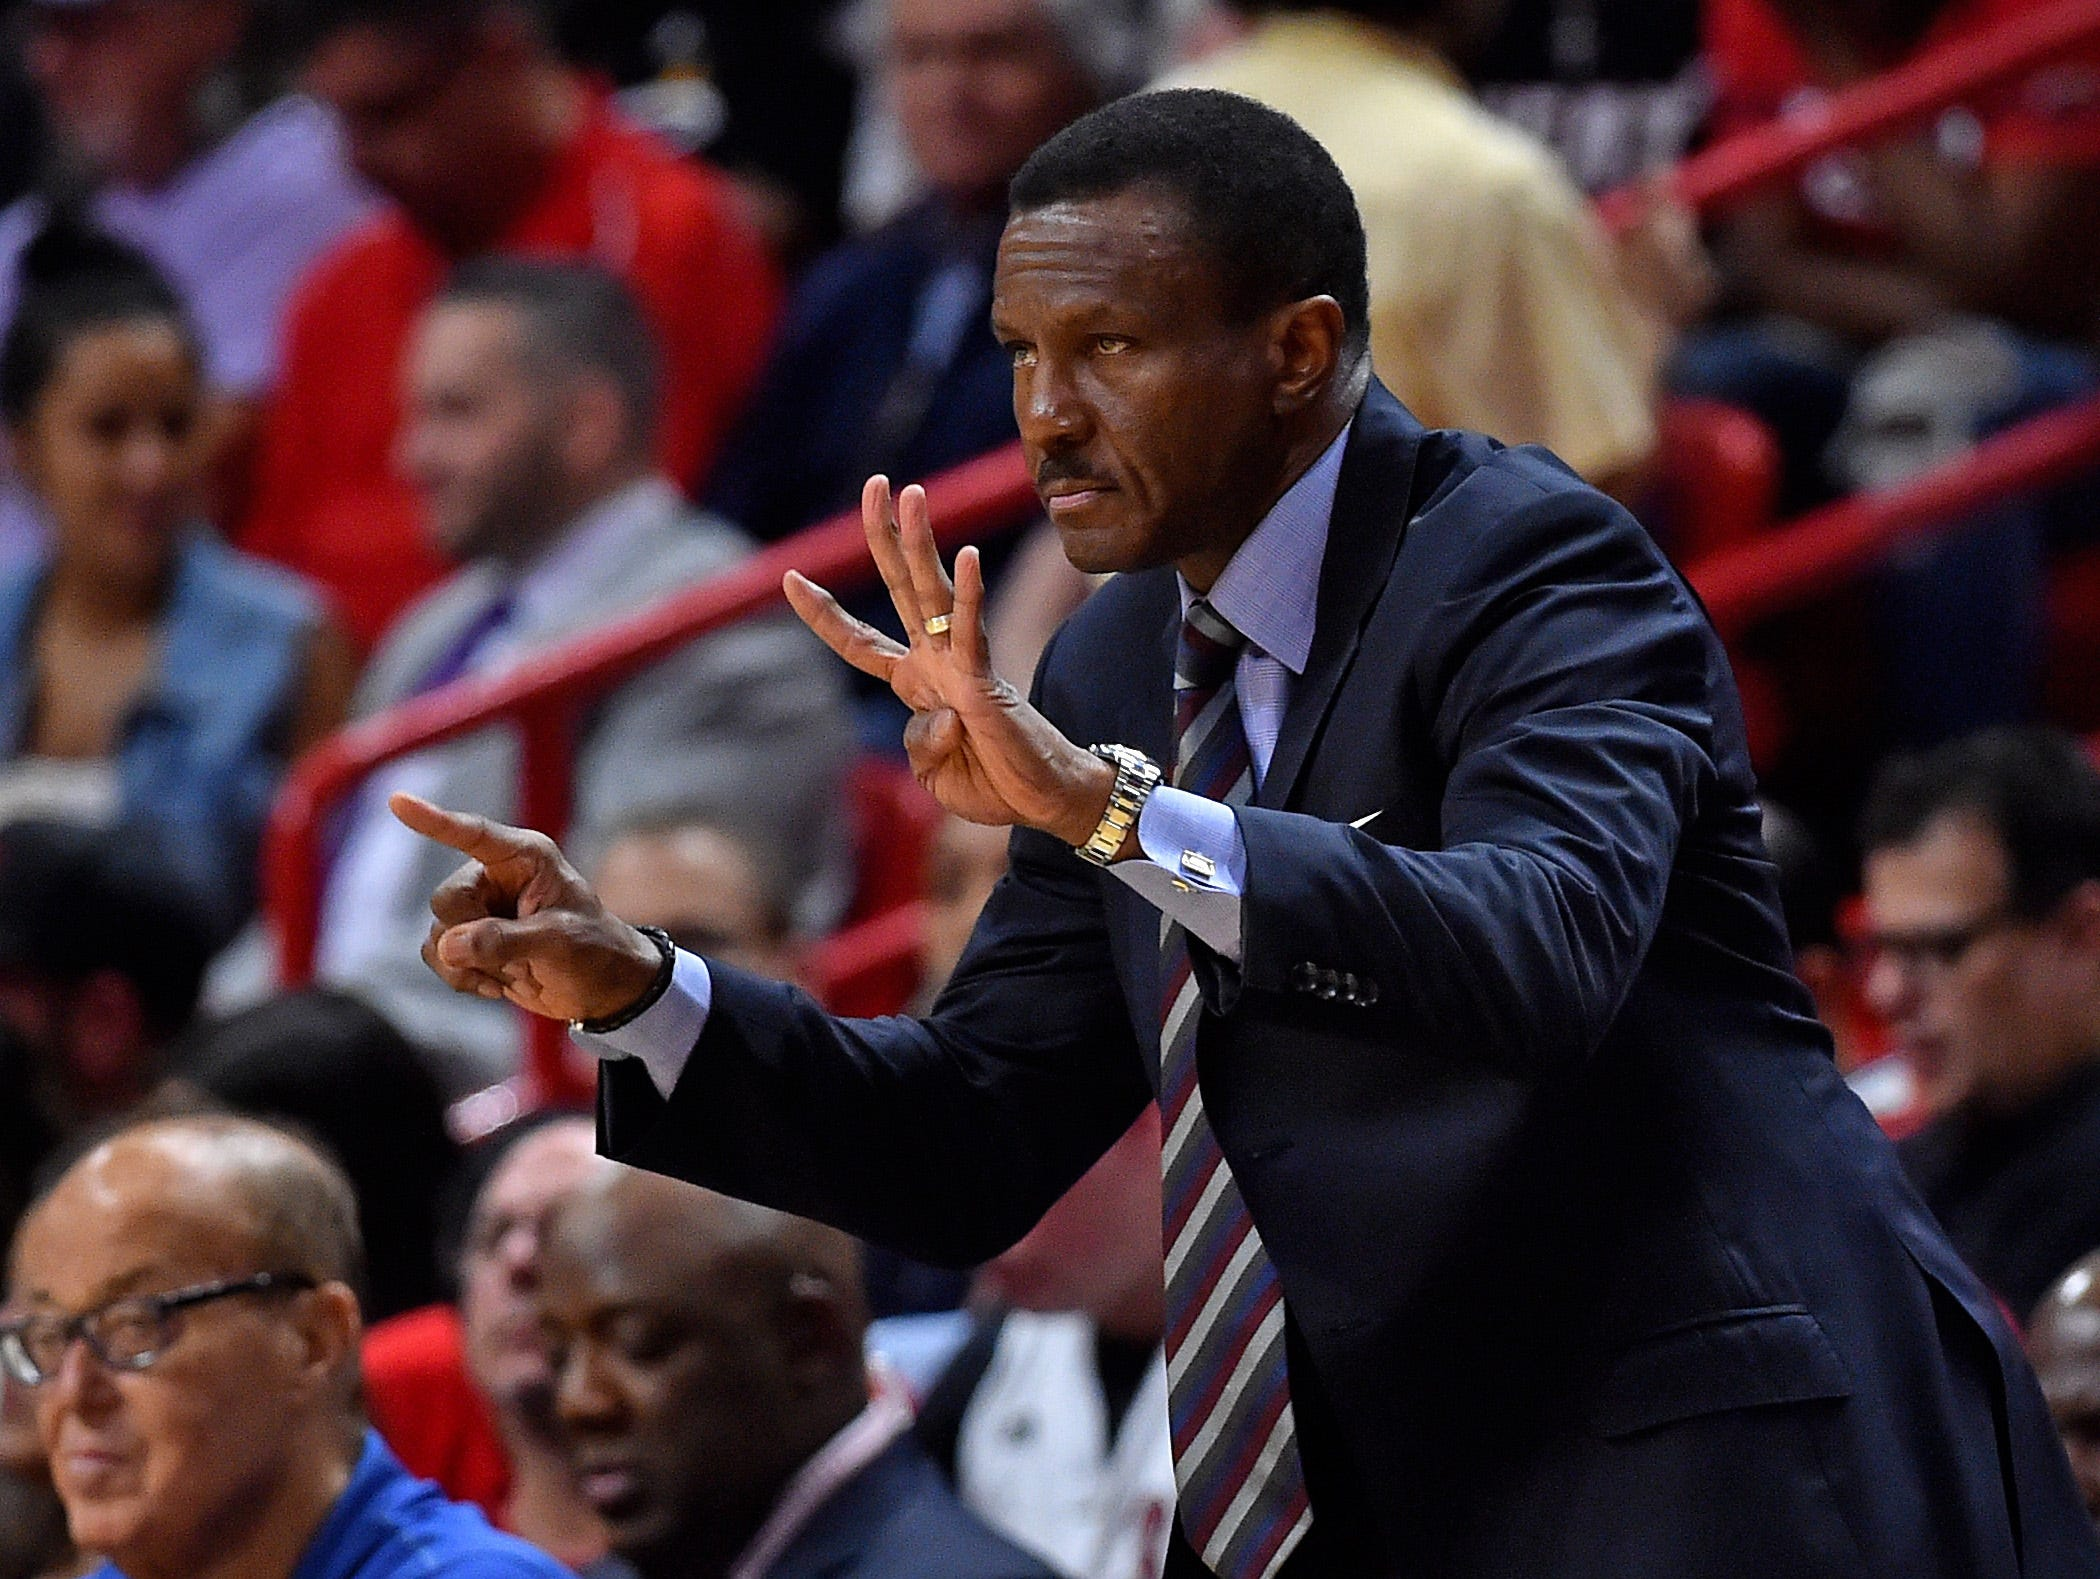 Detroit Pistons head coach Dwane Casey reacts from the sidelines against the Miami Heat during the first half at American Airlines Arena on March 13, 2019.